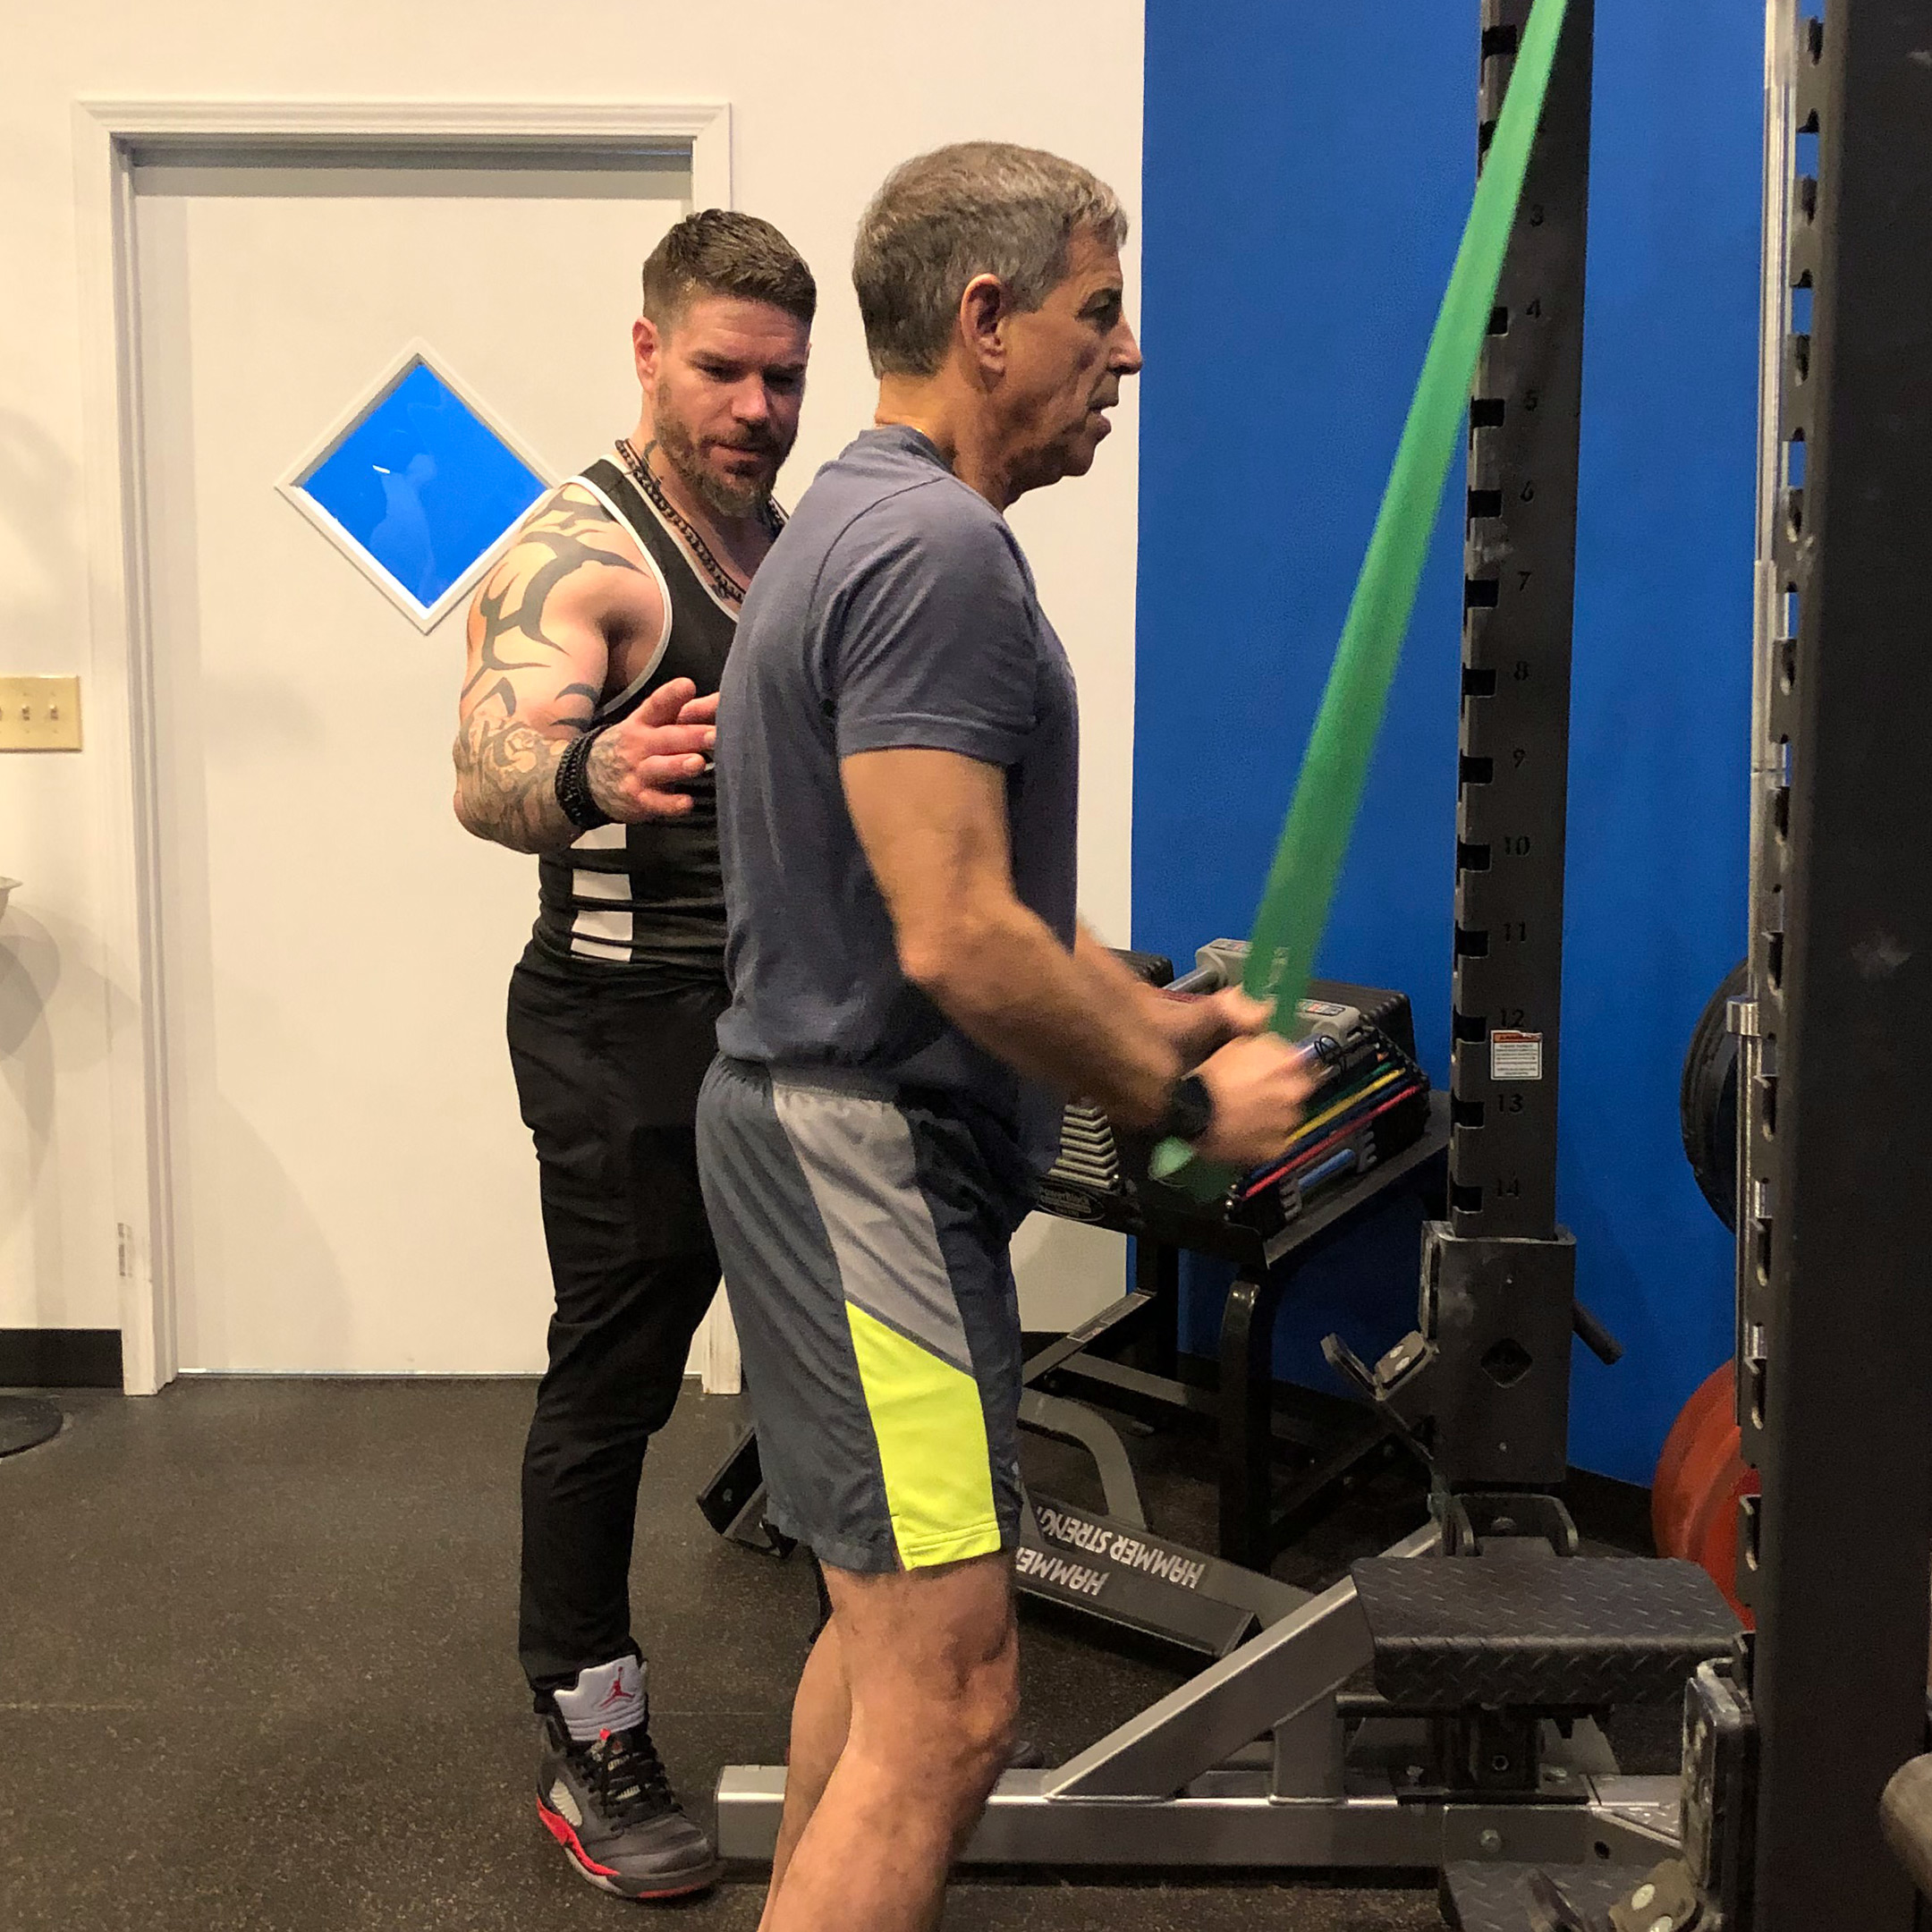 Personal Training - At TruFit, we believe that any legitimate training experience must have a foundation in science. We work one-on-one with you to achieve whatever your training goals might be. Whether it be weight loss, sports performance, or injury recovery we can get you there.